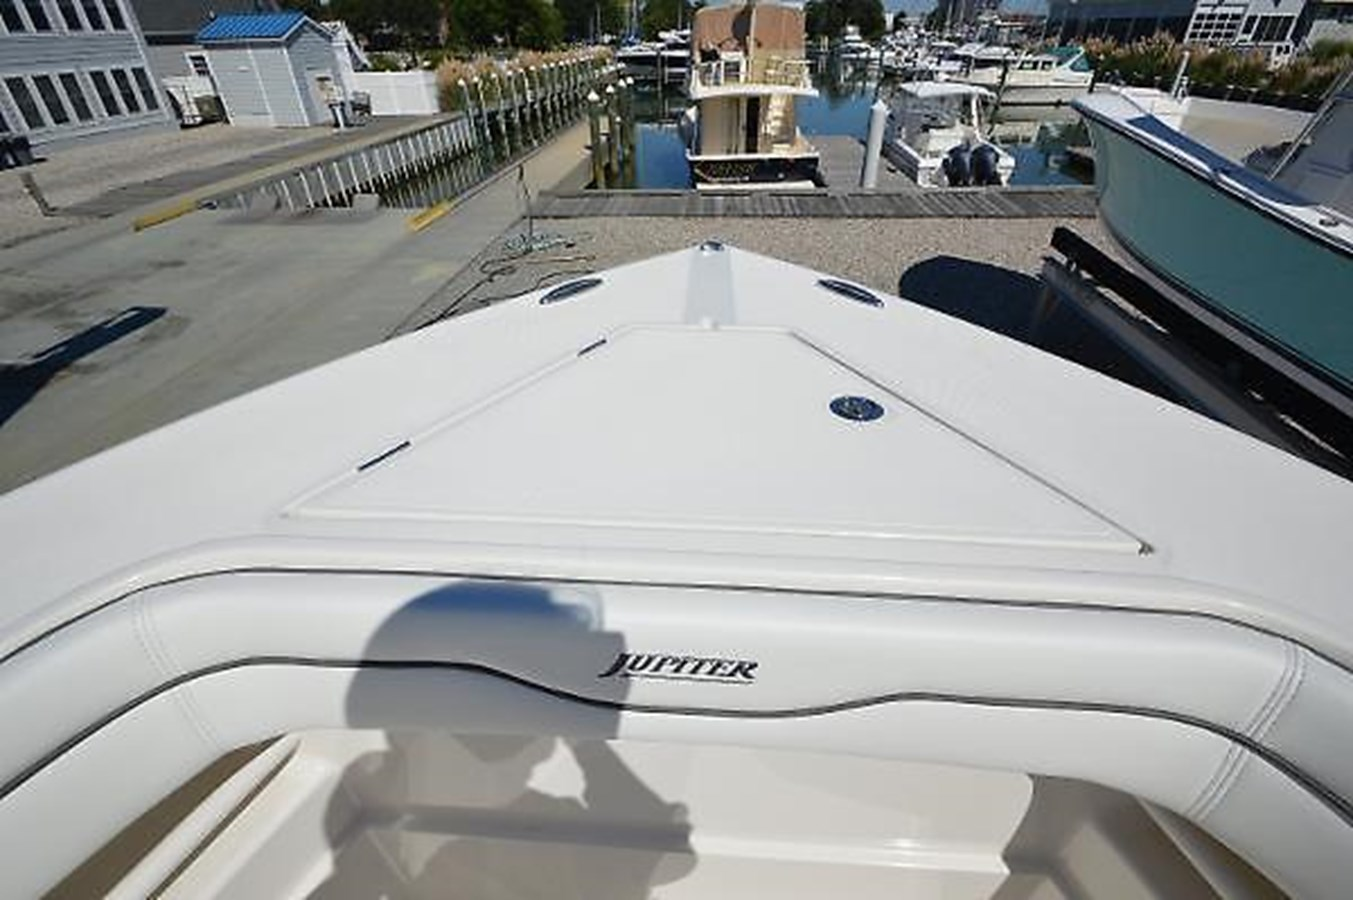 Bow - 30 JUPITER For Sale